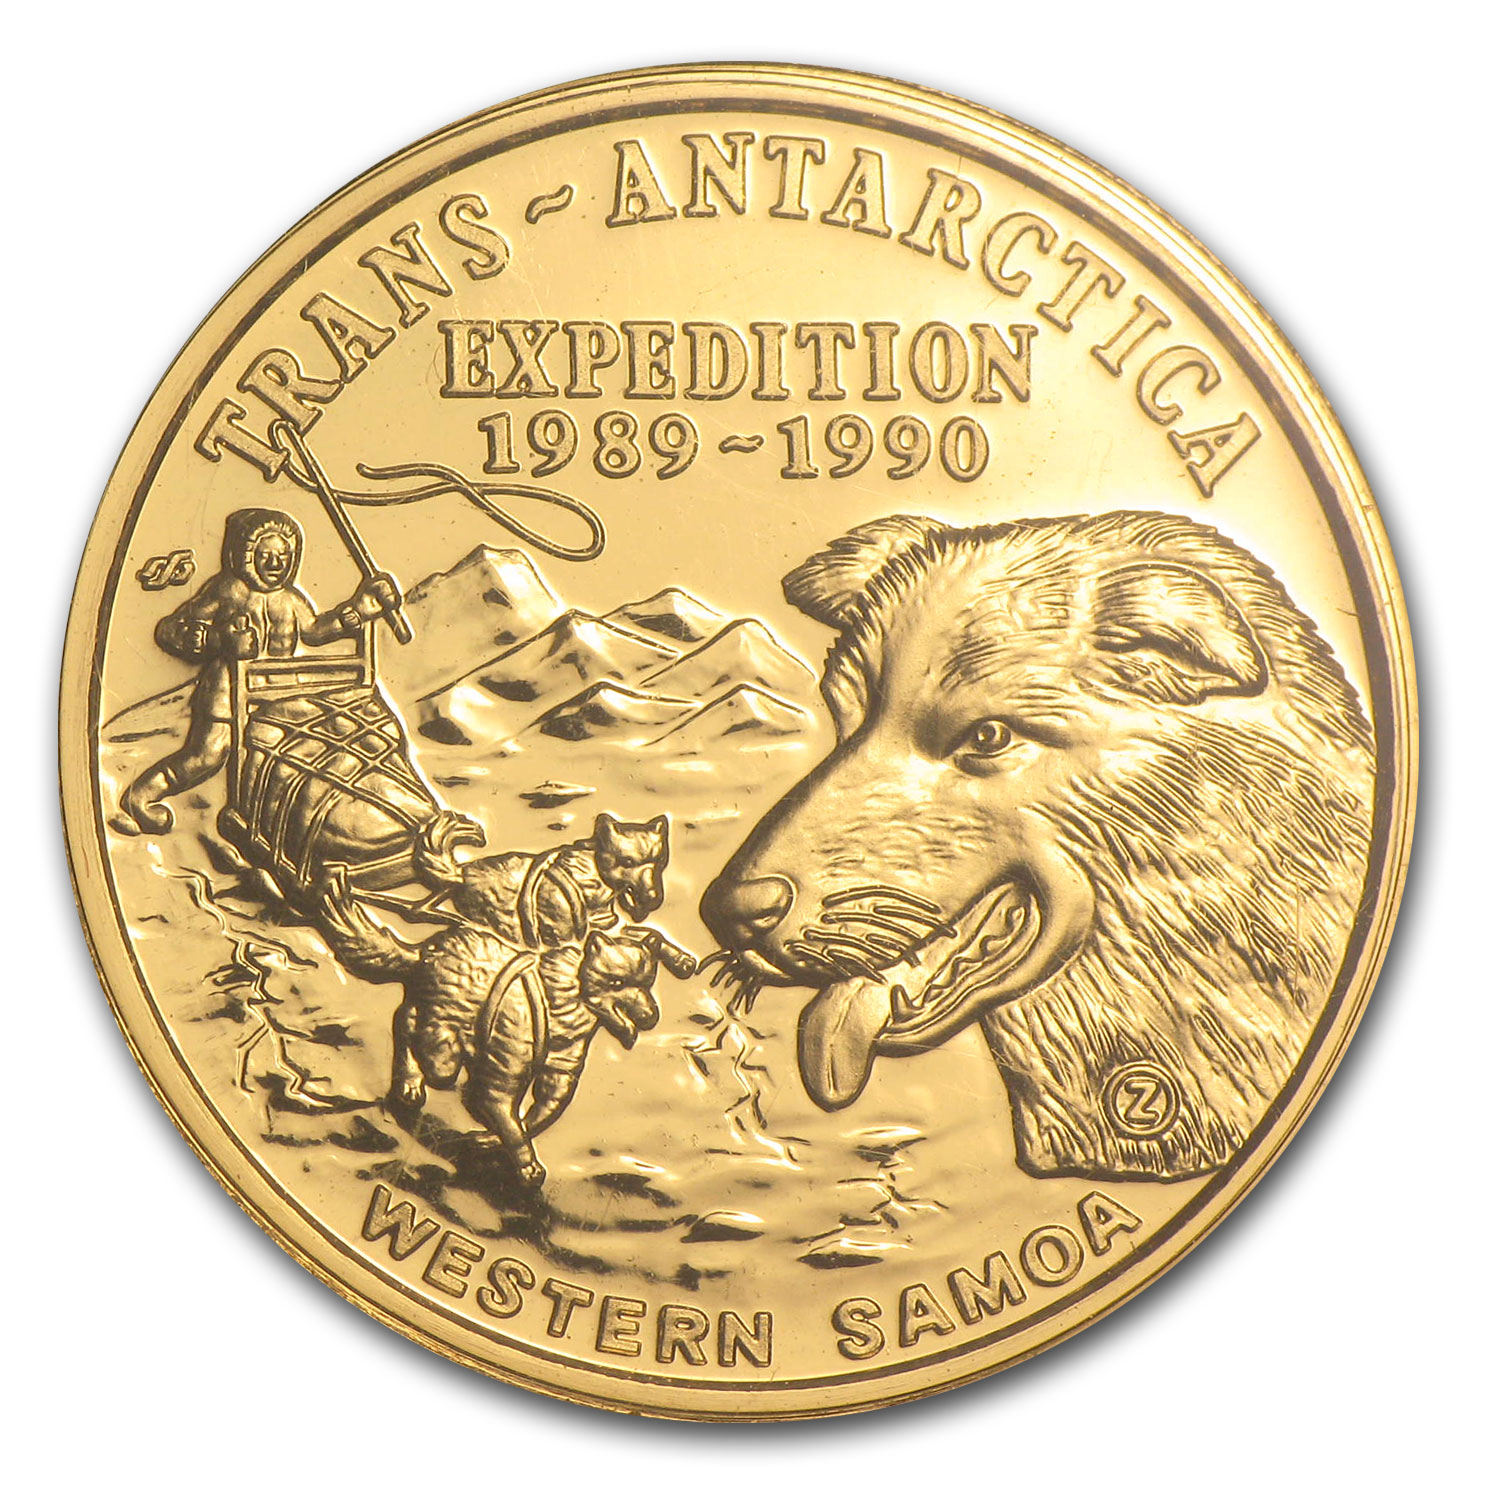 1988 Samoa Gold 50 Tala Antarctic Expedition (.2496 AGW)